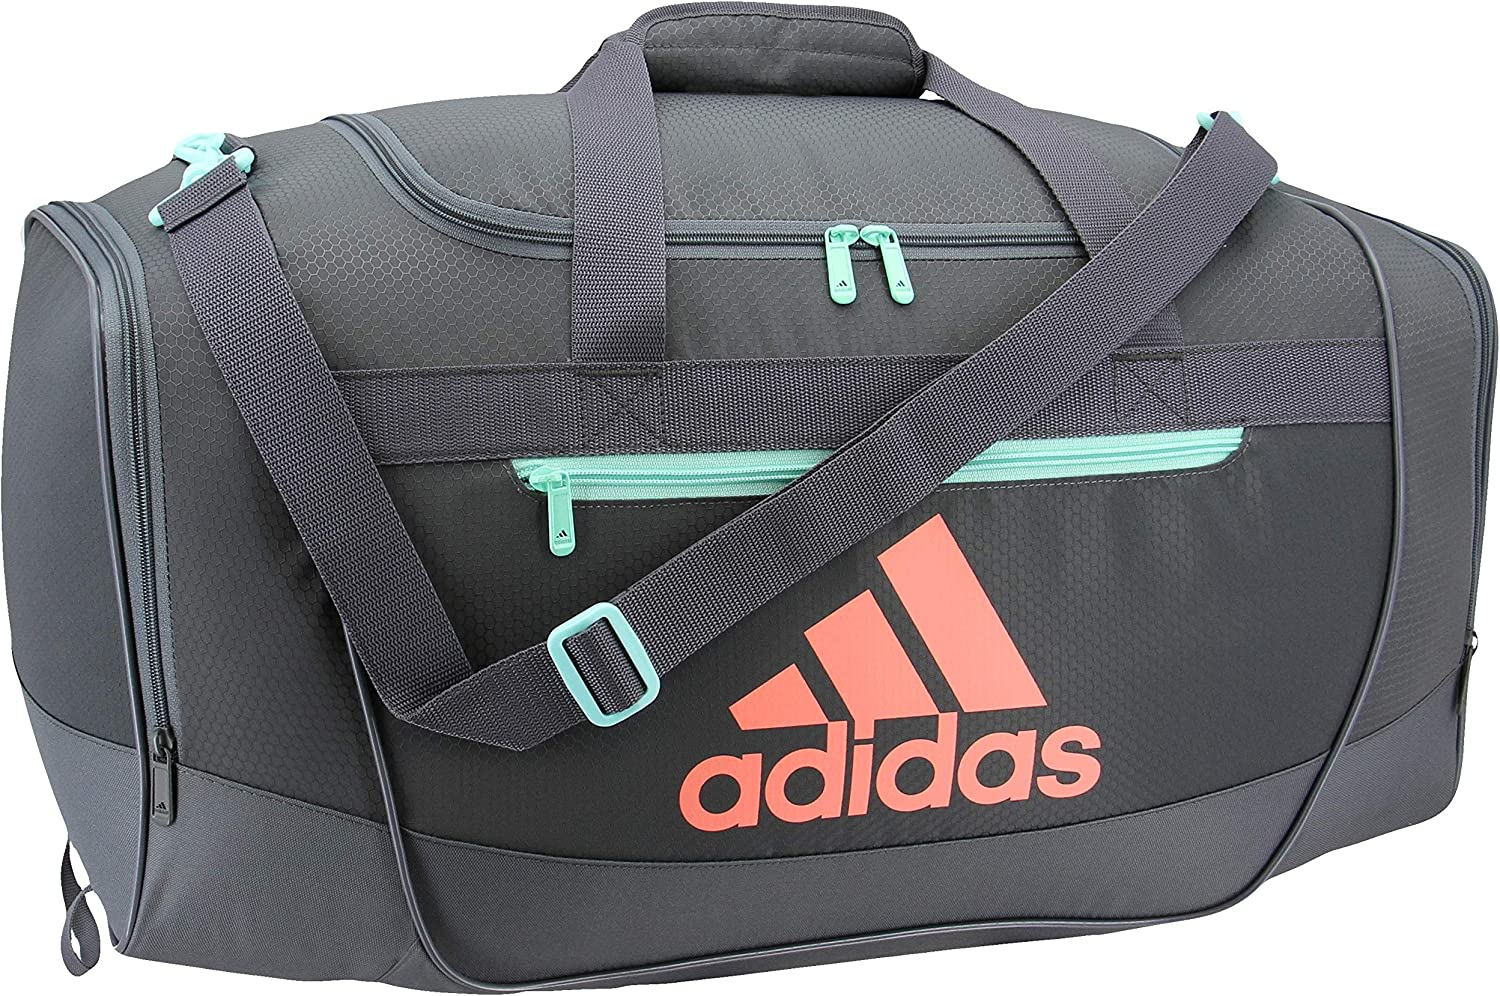 adidas Defender Iii Bag Small Duffel 1 Manufacturer direct delivery year warranty